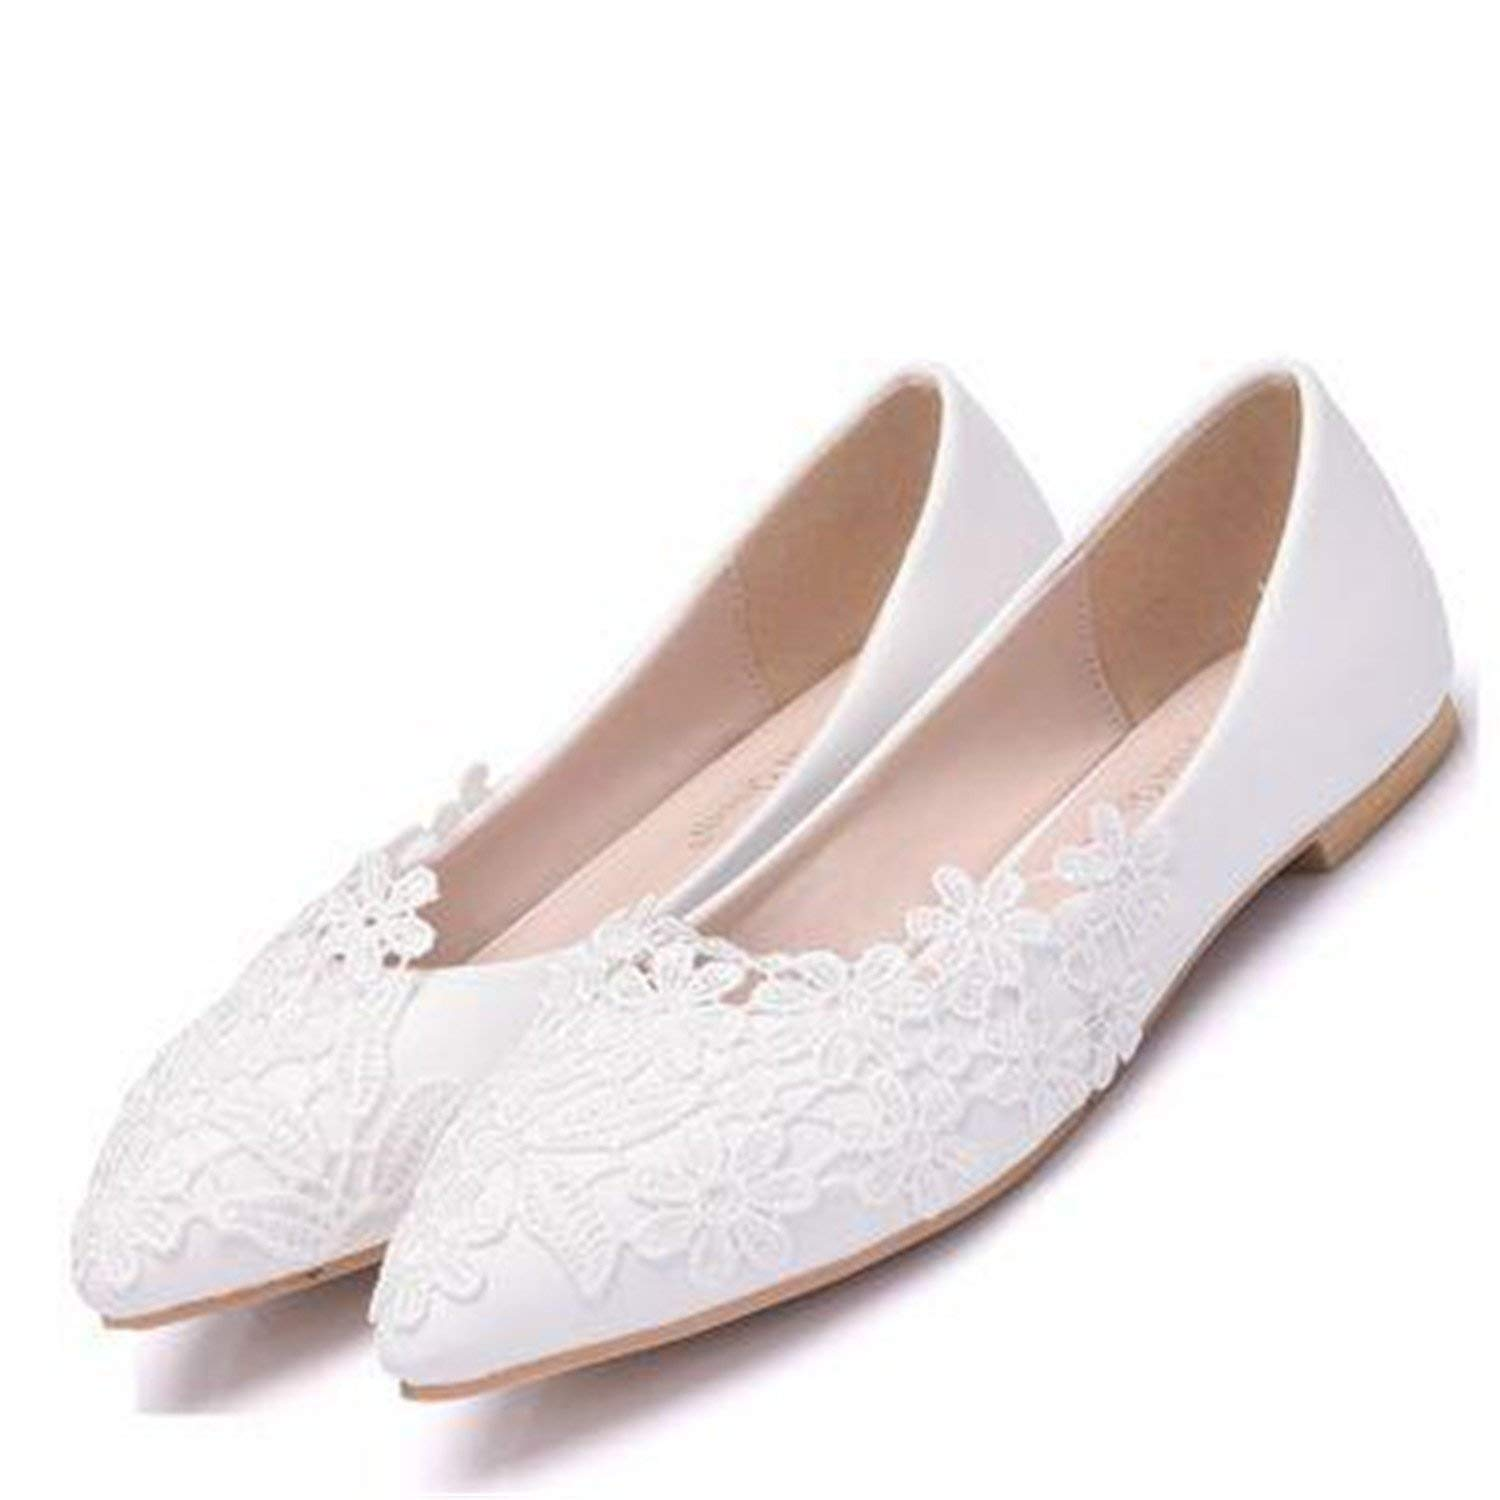 287d78c64 Get Quotations · spyman Ballet Flats White Lace Wedding Shoes Flat Heel  Casual Shoes Pointed Toe Women Wedding Princess